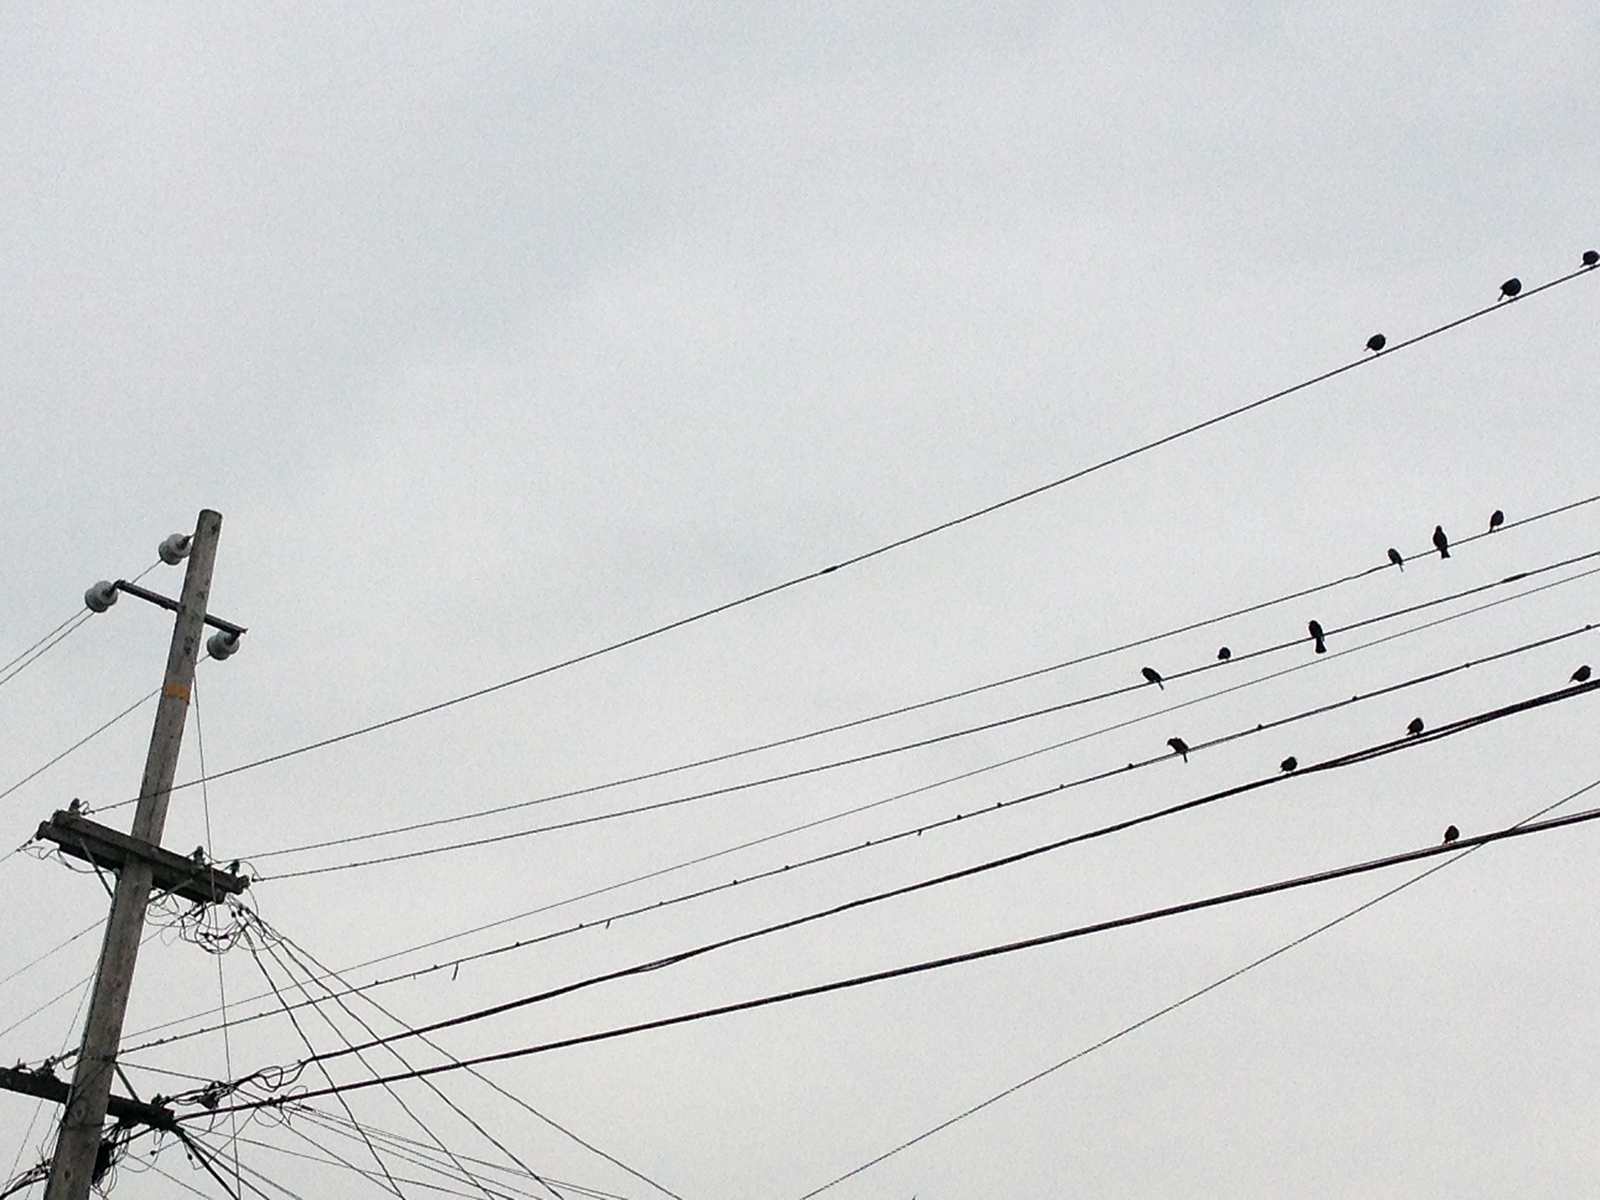 Birds perched on a telephone line at 26th and Treat.